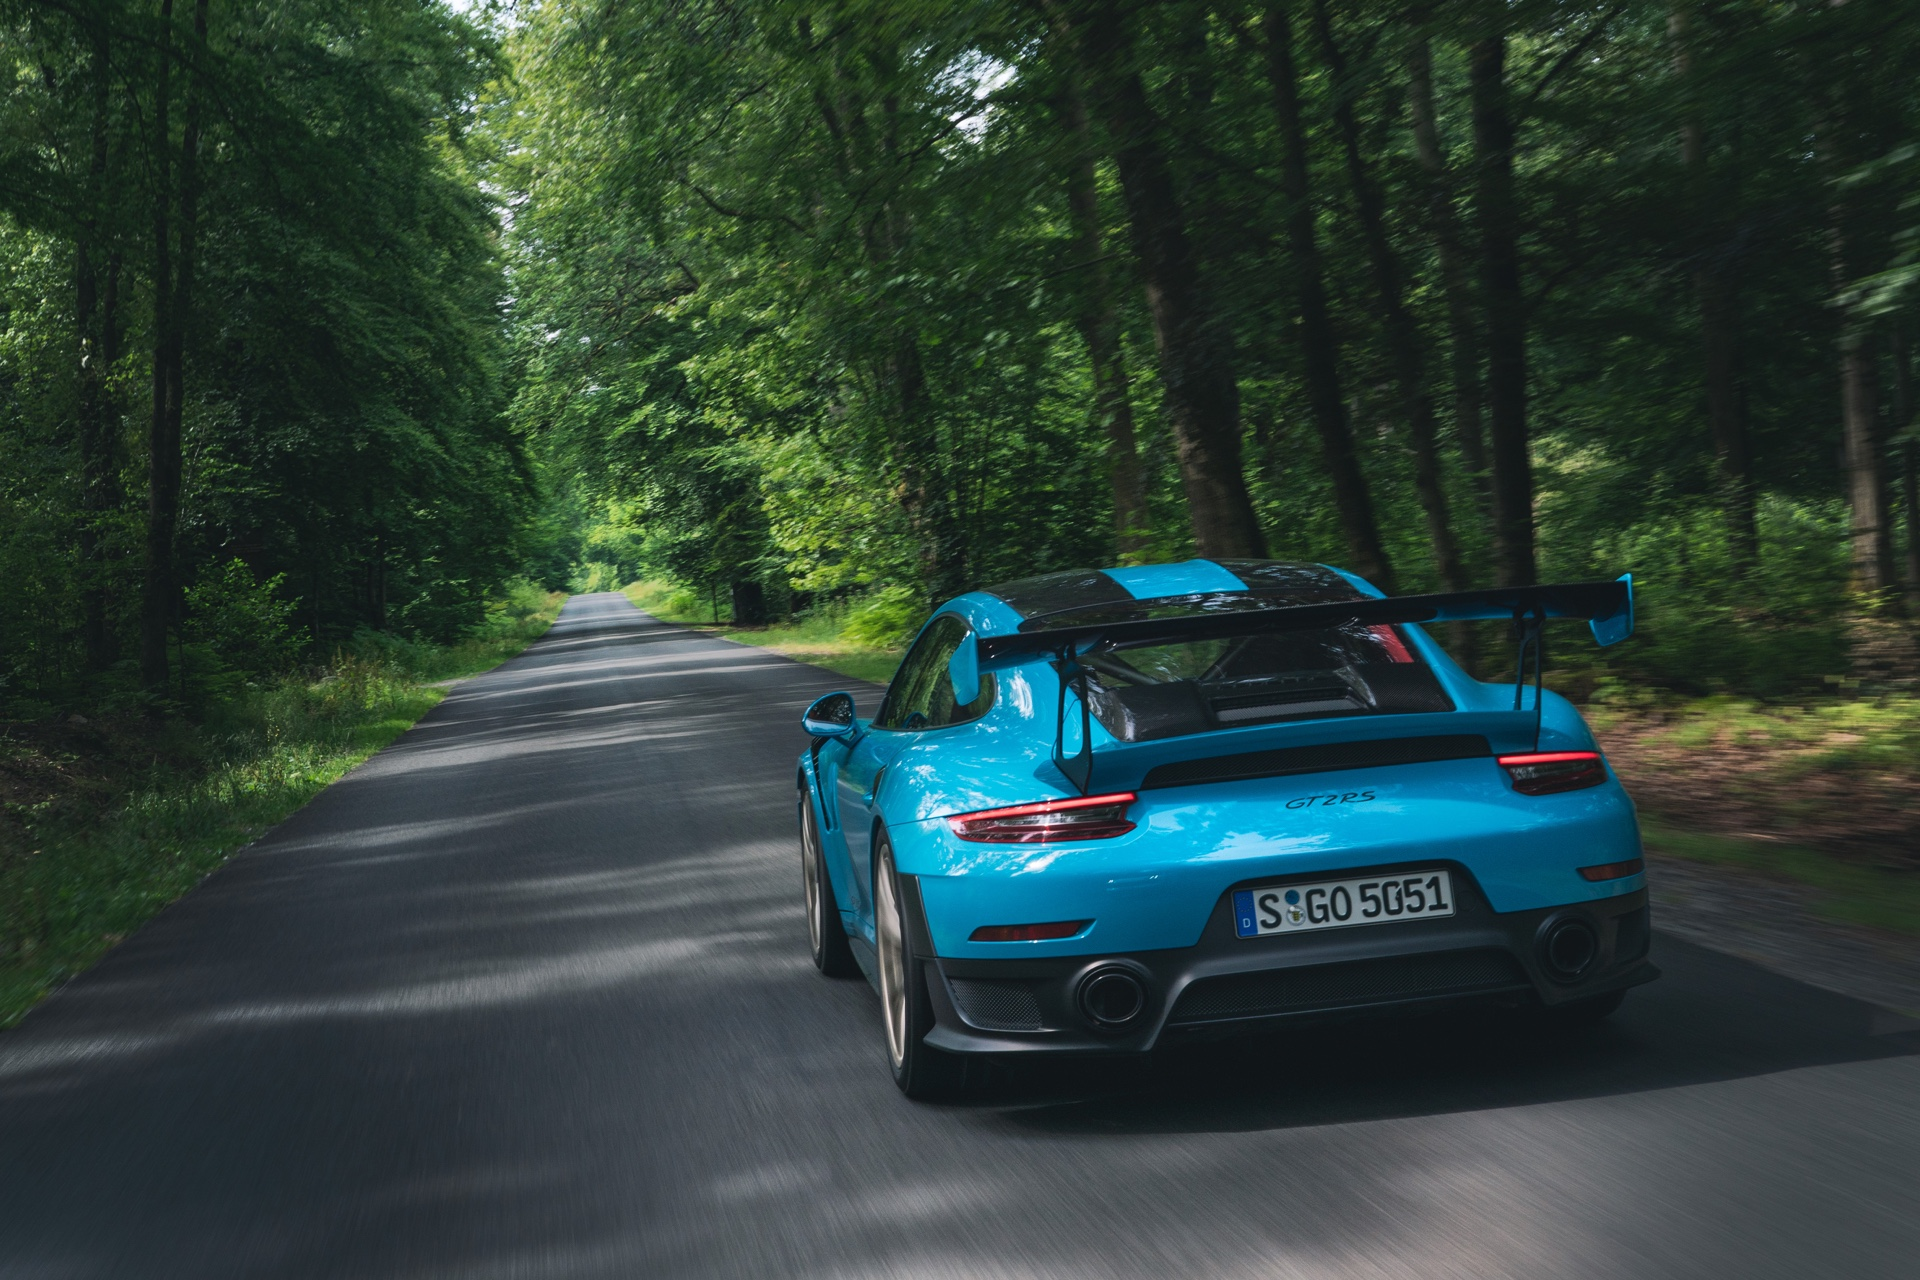 2019 Porsche GT2 RS Review